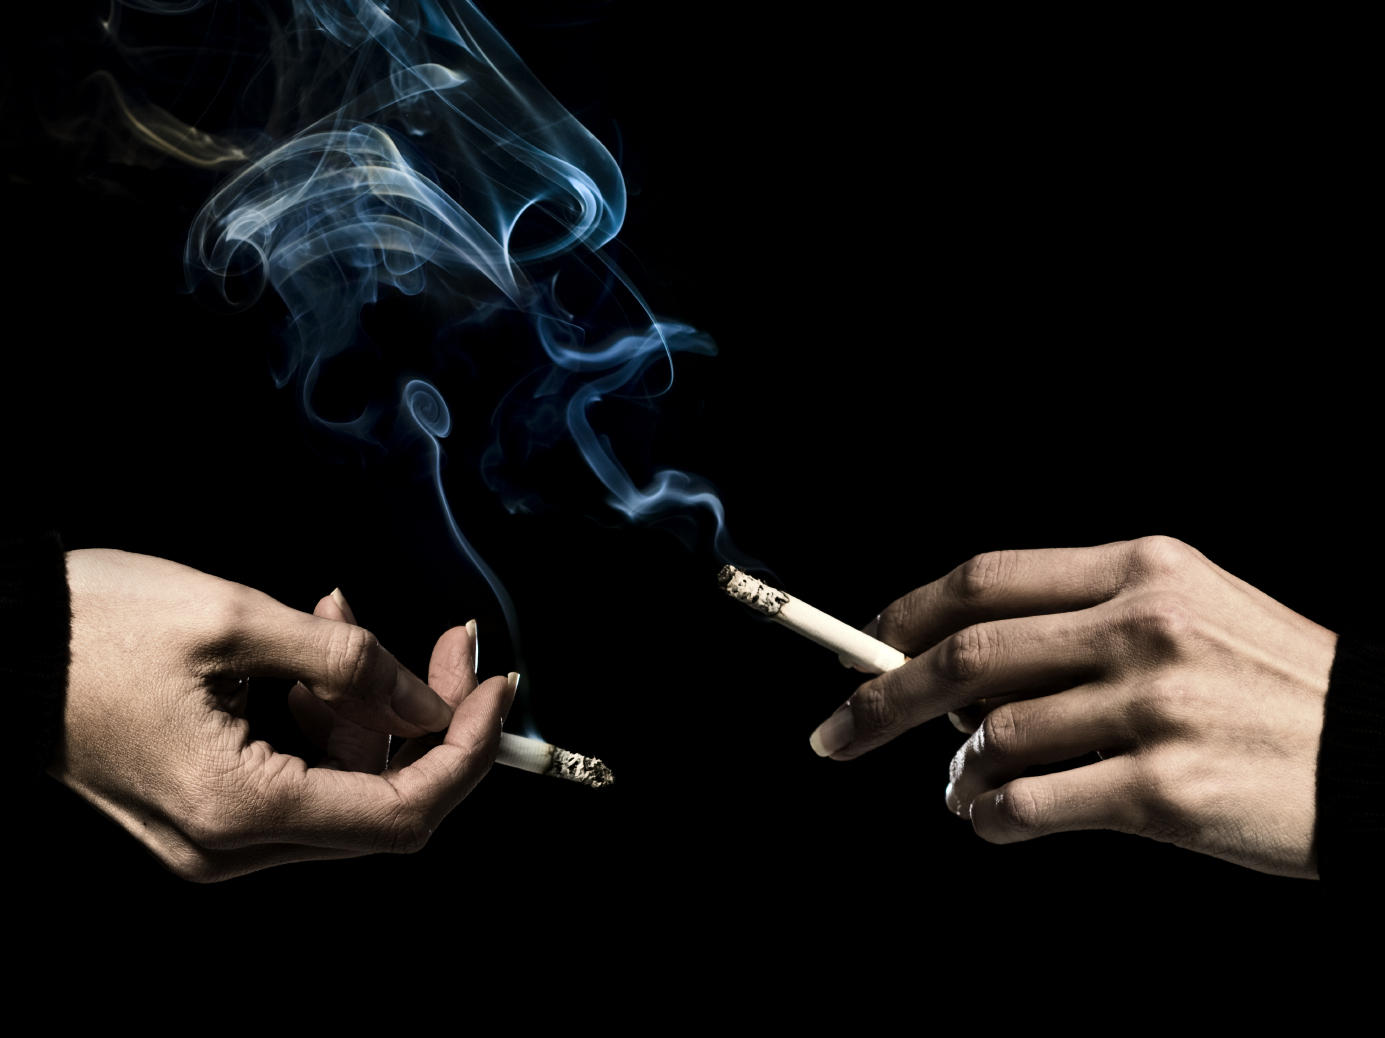 """cigarette smoking The us surgeon general has said, """"smoking cessation [stopping smoking] represents the single most important step that smokers can take to enhance the length and quality of their lives"""" it's hard to quit smoking, but you can do it to have the best chance of quitting tobacco and staying quit ."""